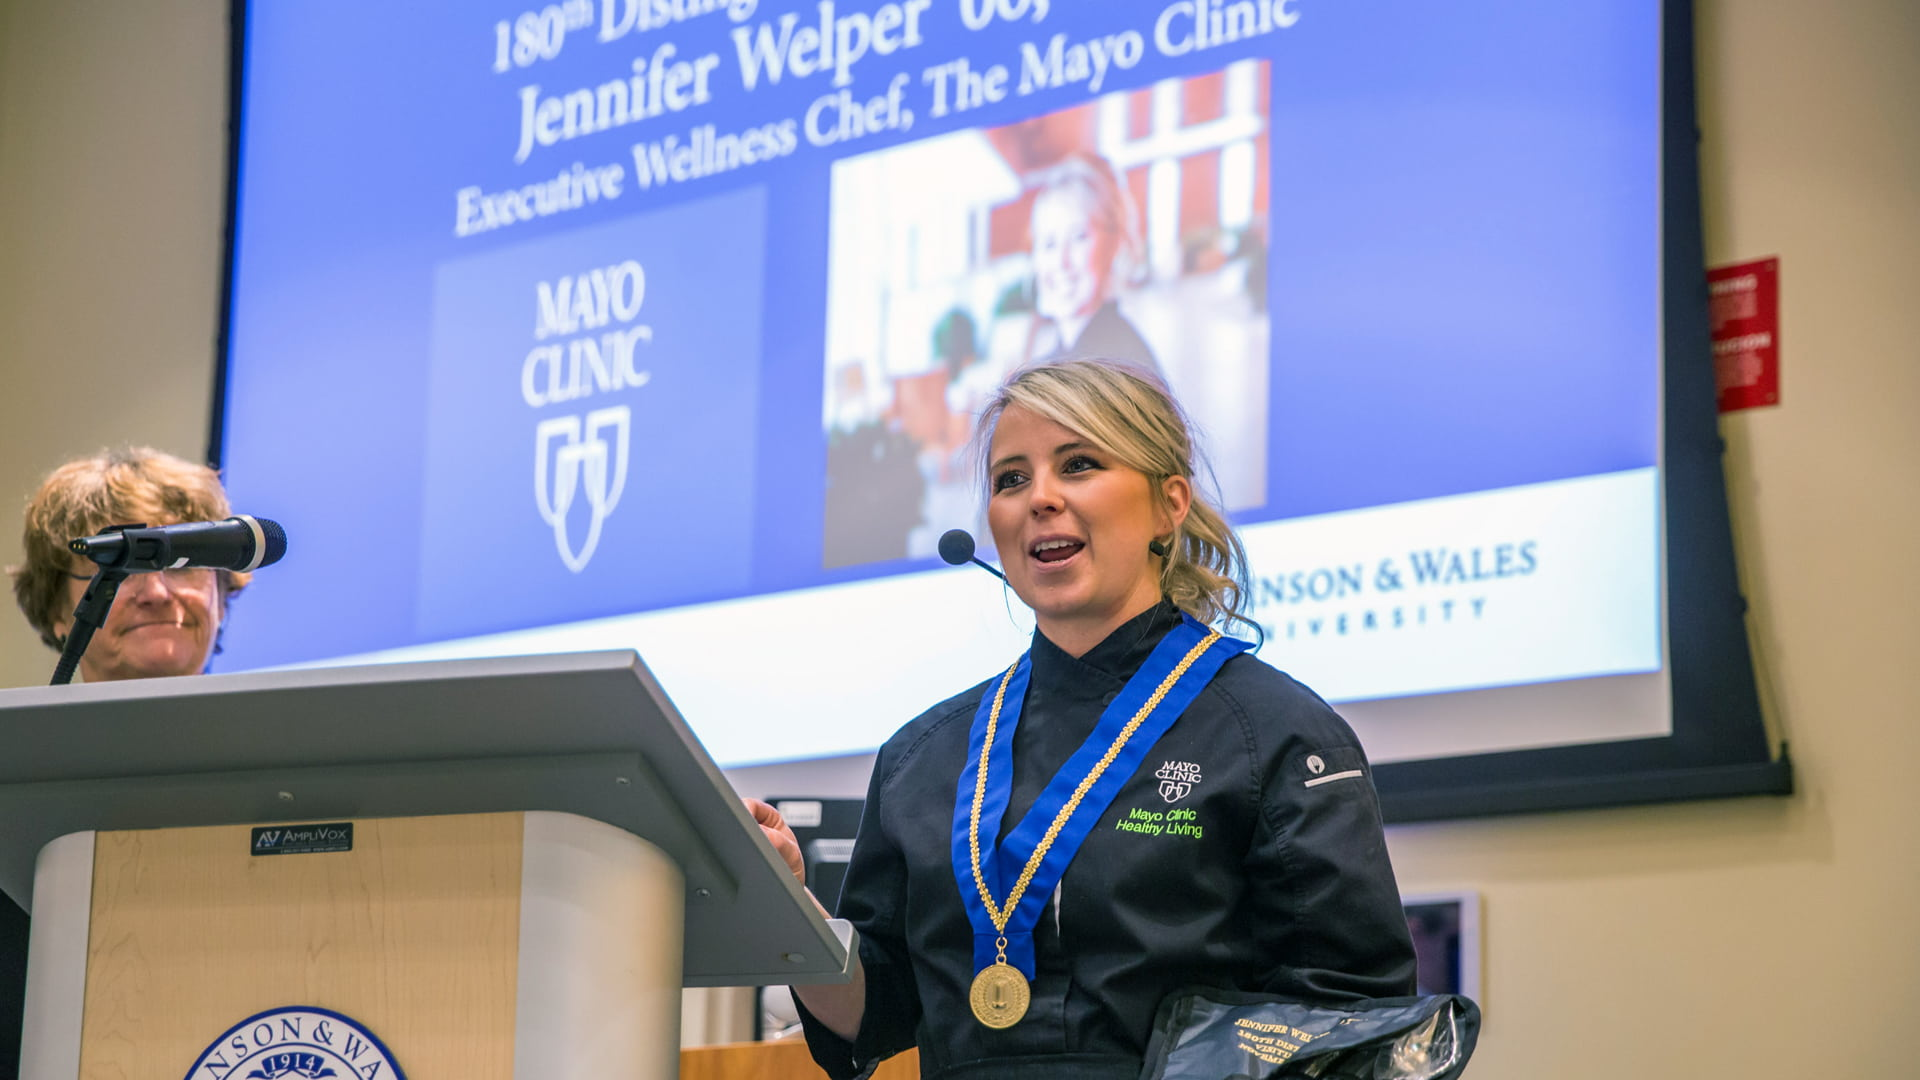 Jen Welper '06 of the Mayo Clinic